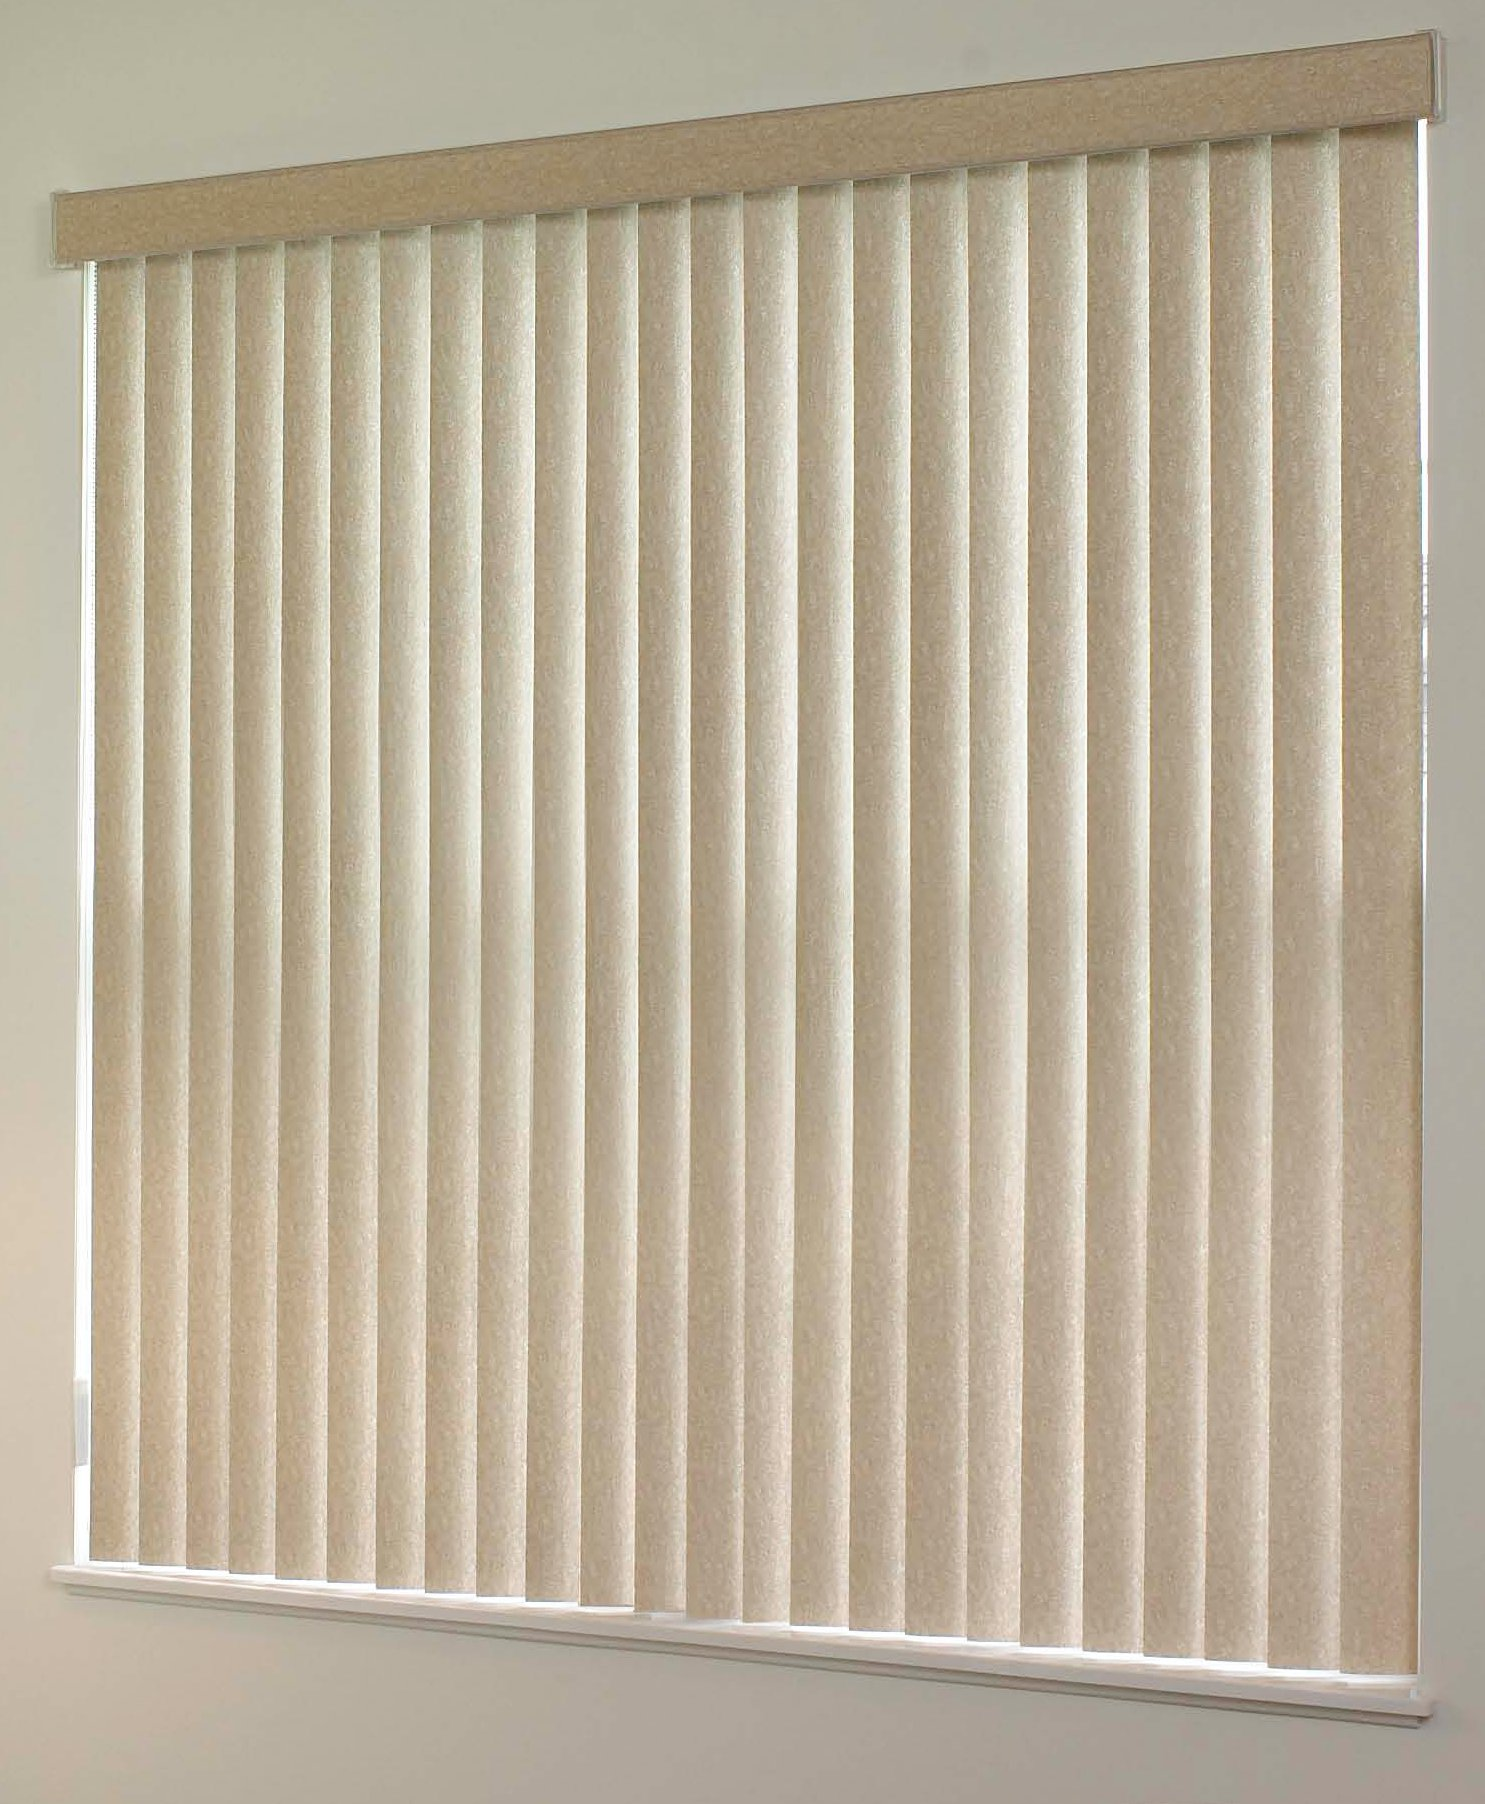 Lowes Cellular Shades | Lowes Shades | Roller Window Shades Lowes